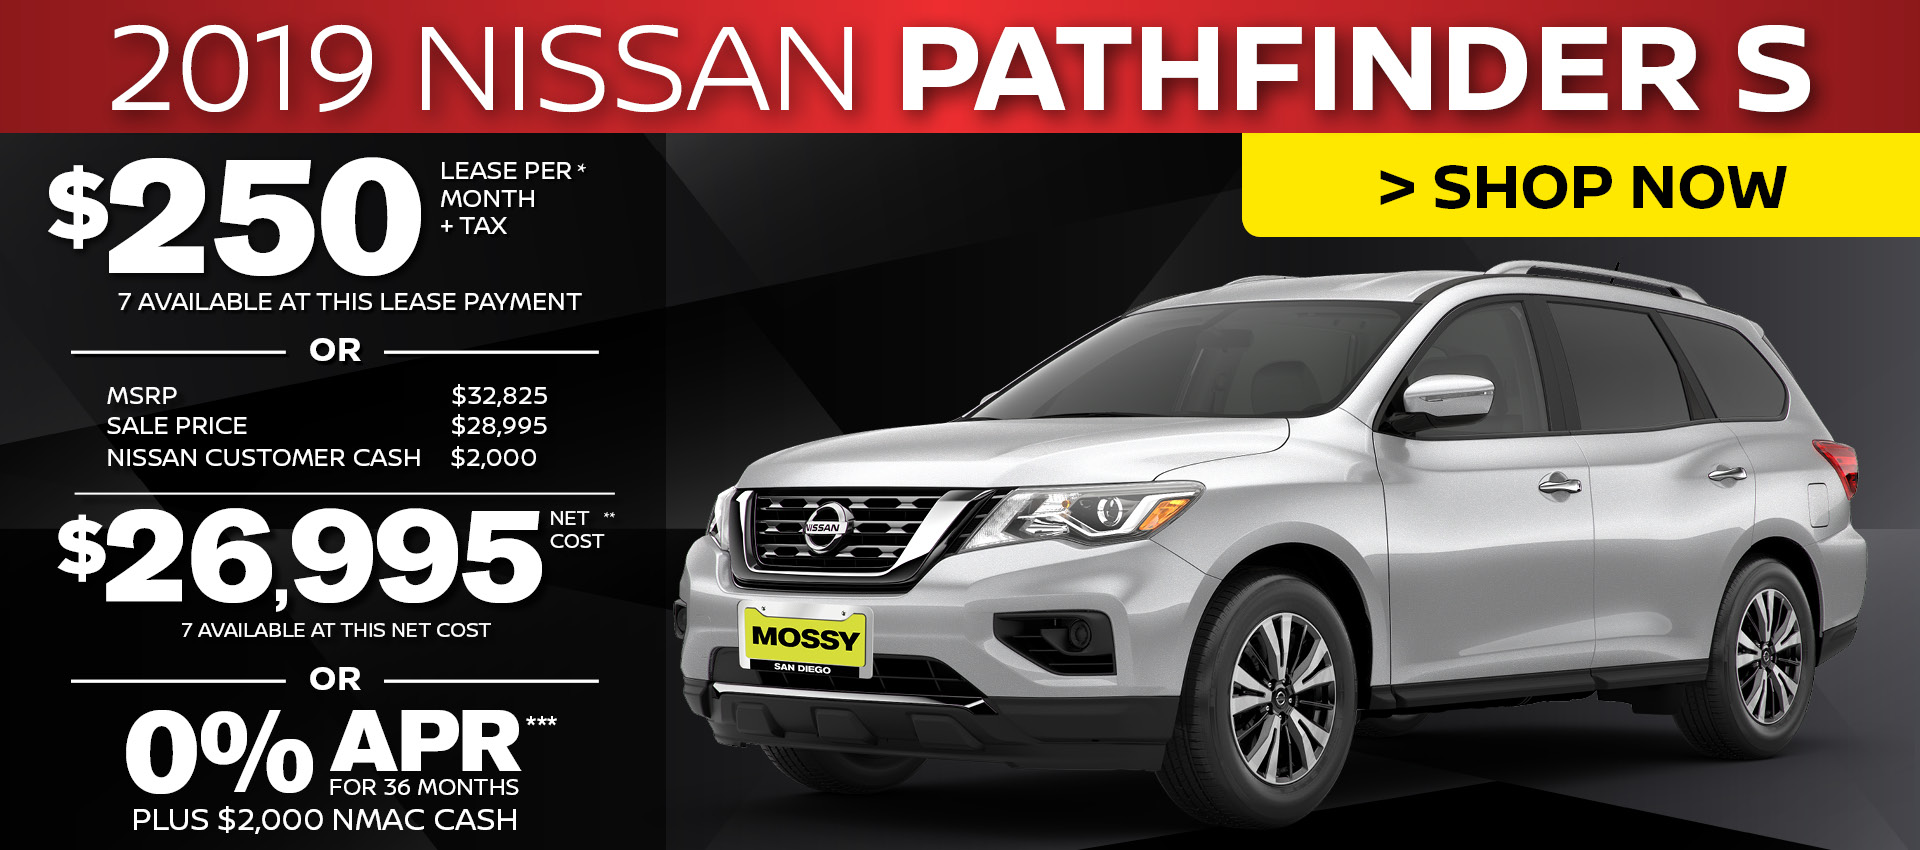 Mossy Nissan - Nissan Pathfinder $26,995 Purchase HP